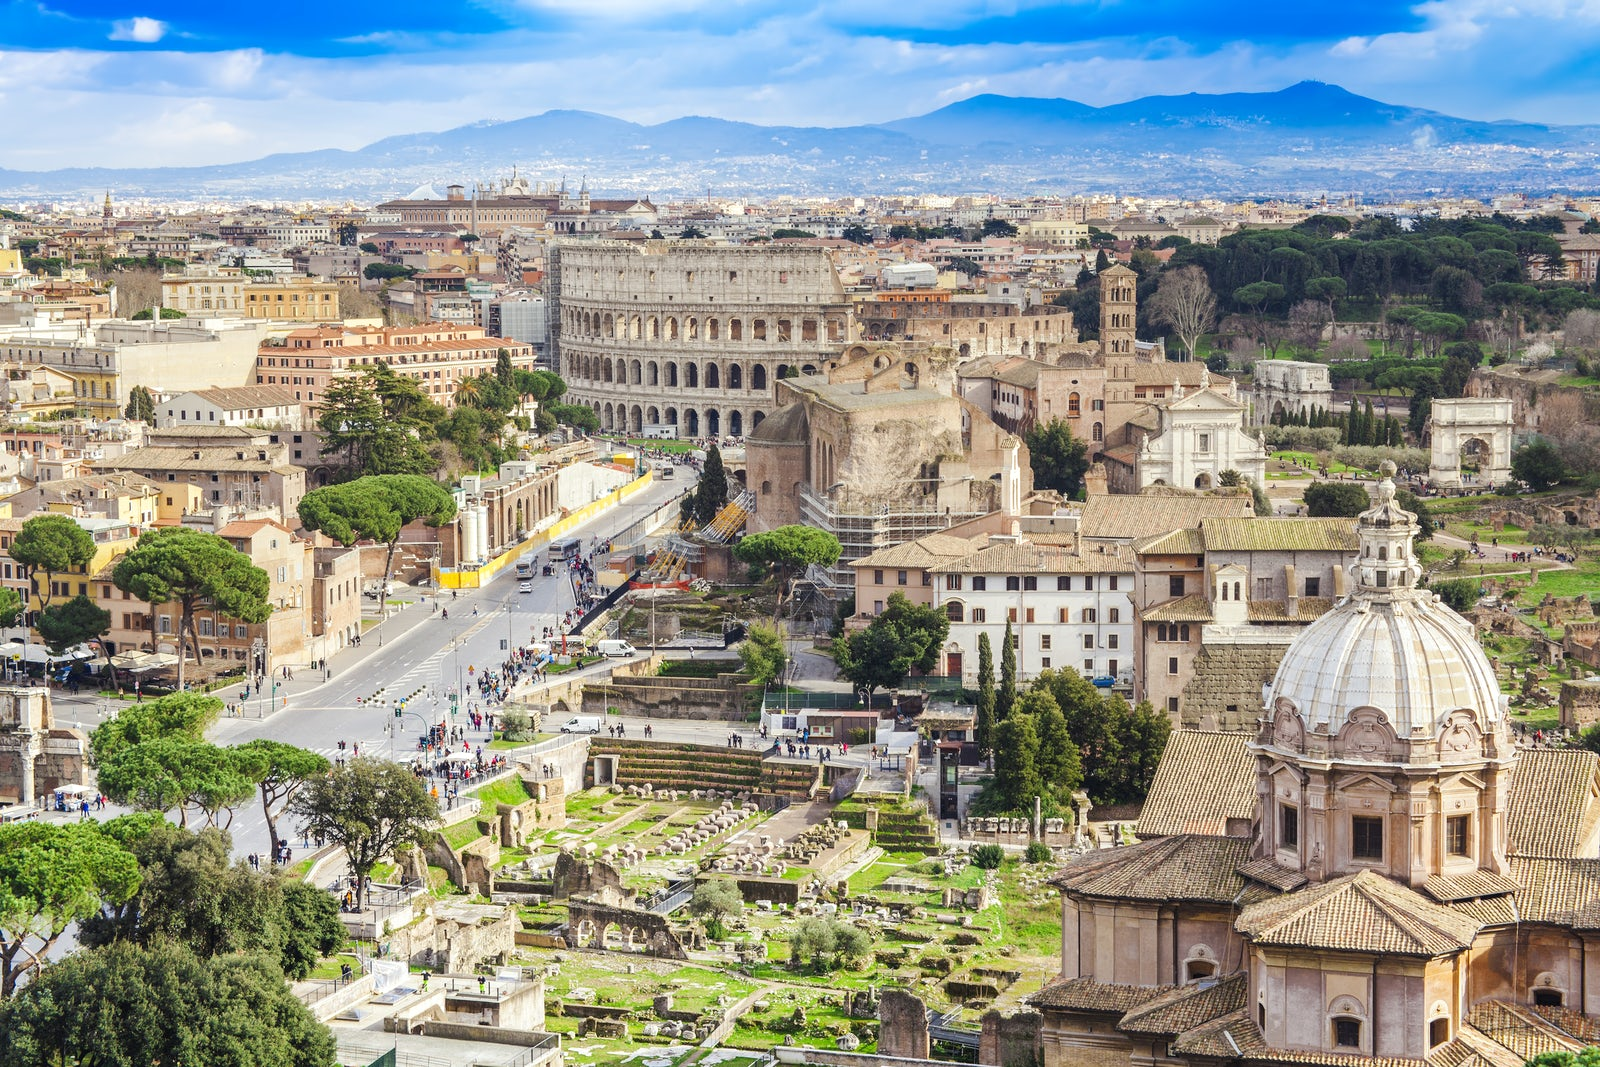 !i18n:en:data.cities:rome.picture.caption